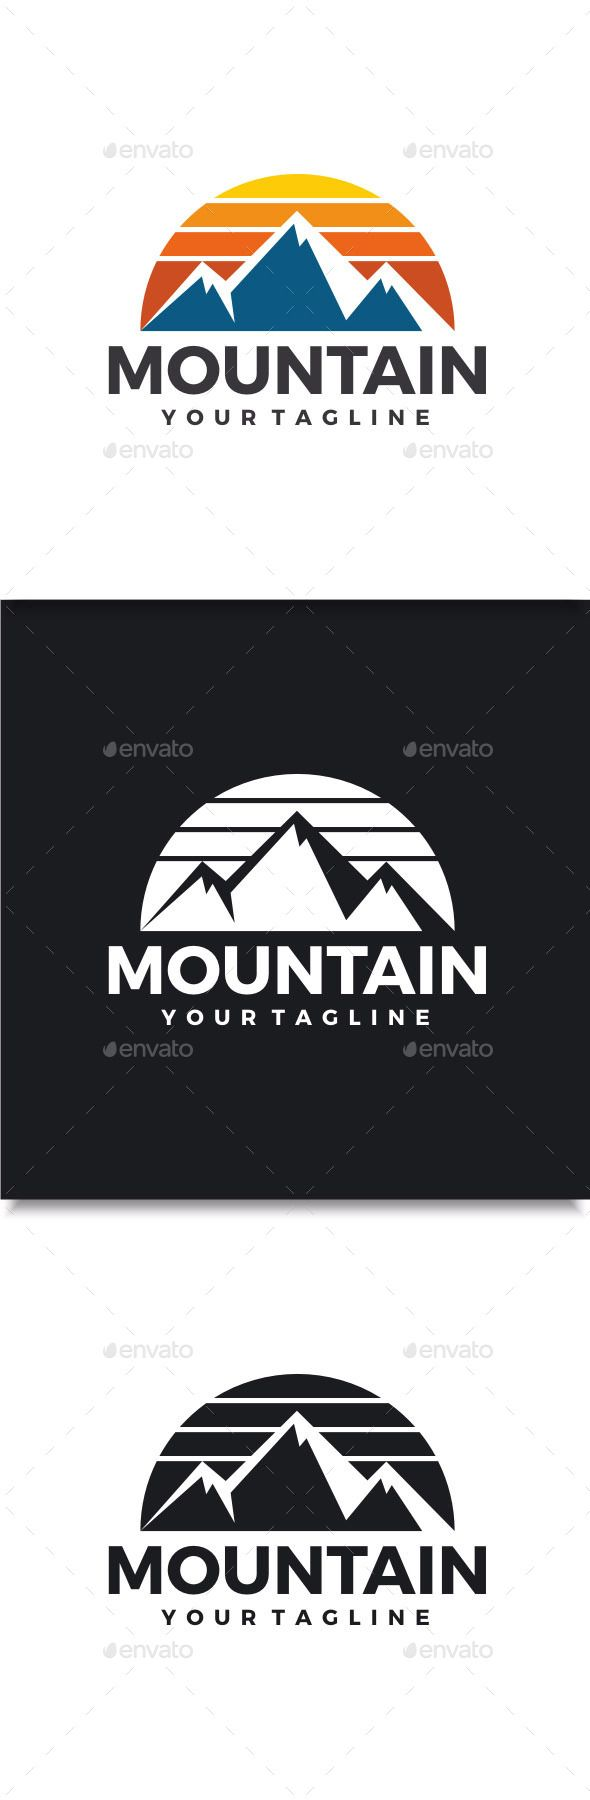 Mountain Logo (Vector EPS, AI Illustrator, Resizable, CS, adventure, climb, climbing, design, graphic, high, hill, landscape, logo, mountain, nature, outdoor, peak, scene, snow, sun, template, travel, vector)